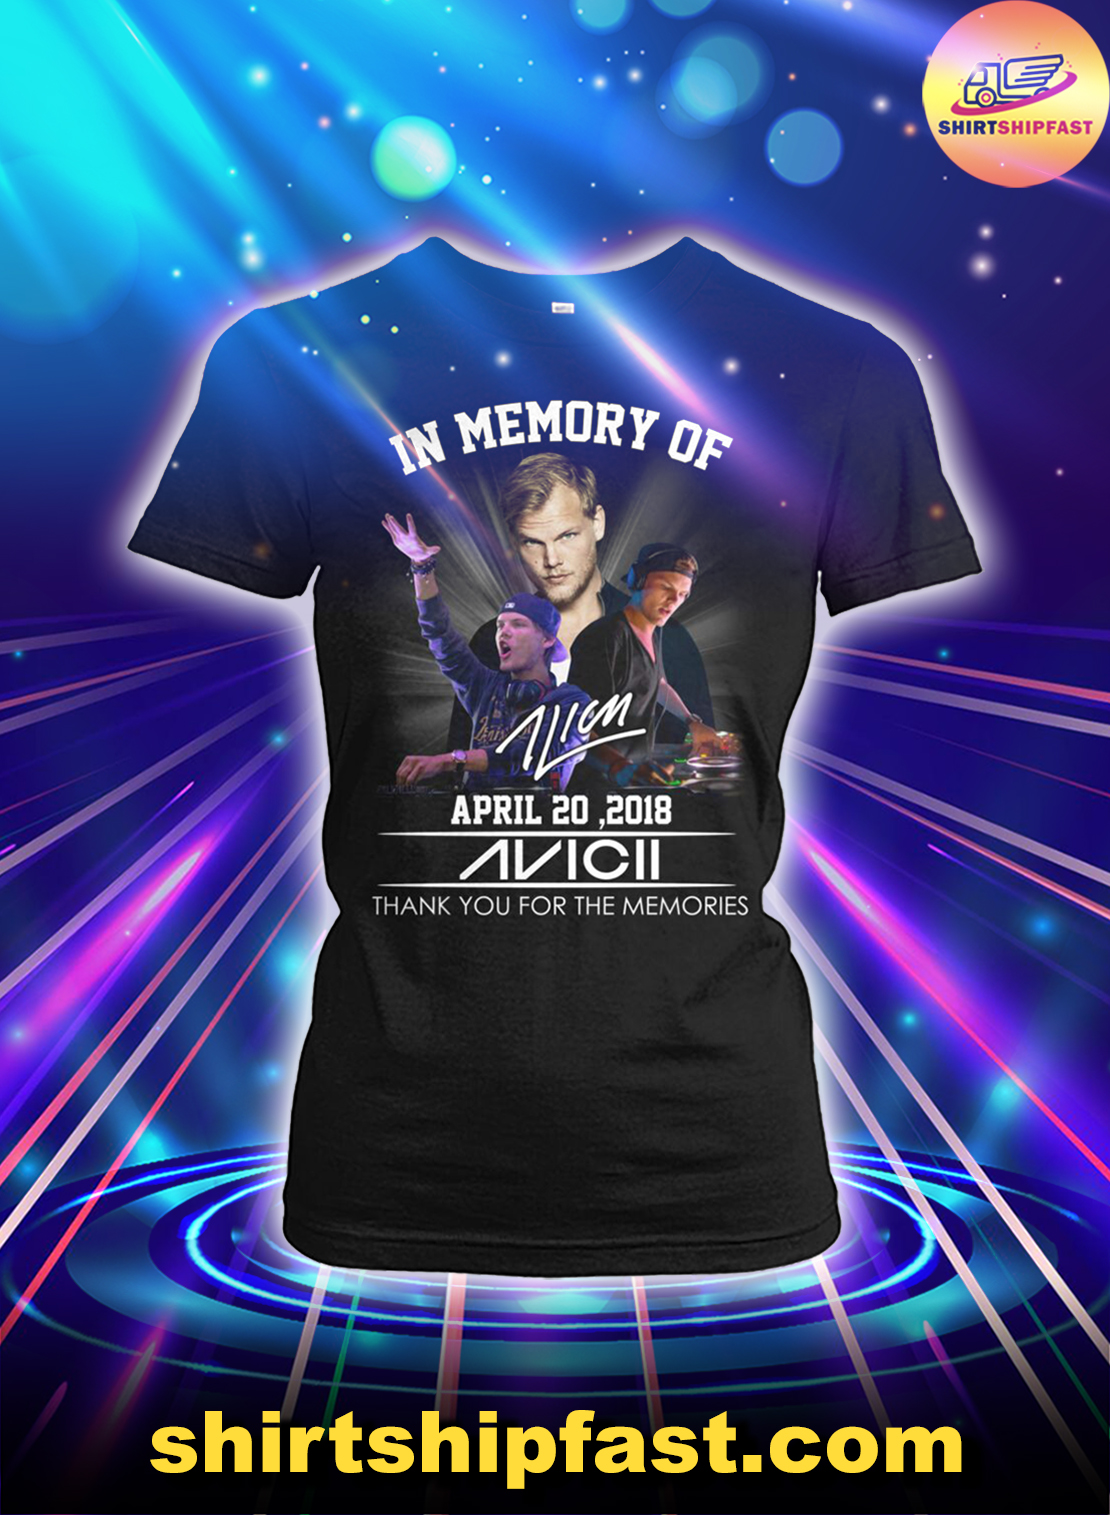 In memory of April 20 2018 Avicii thank you for the memories lady shirt